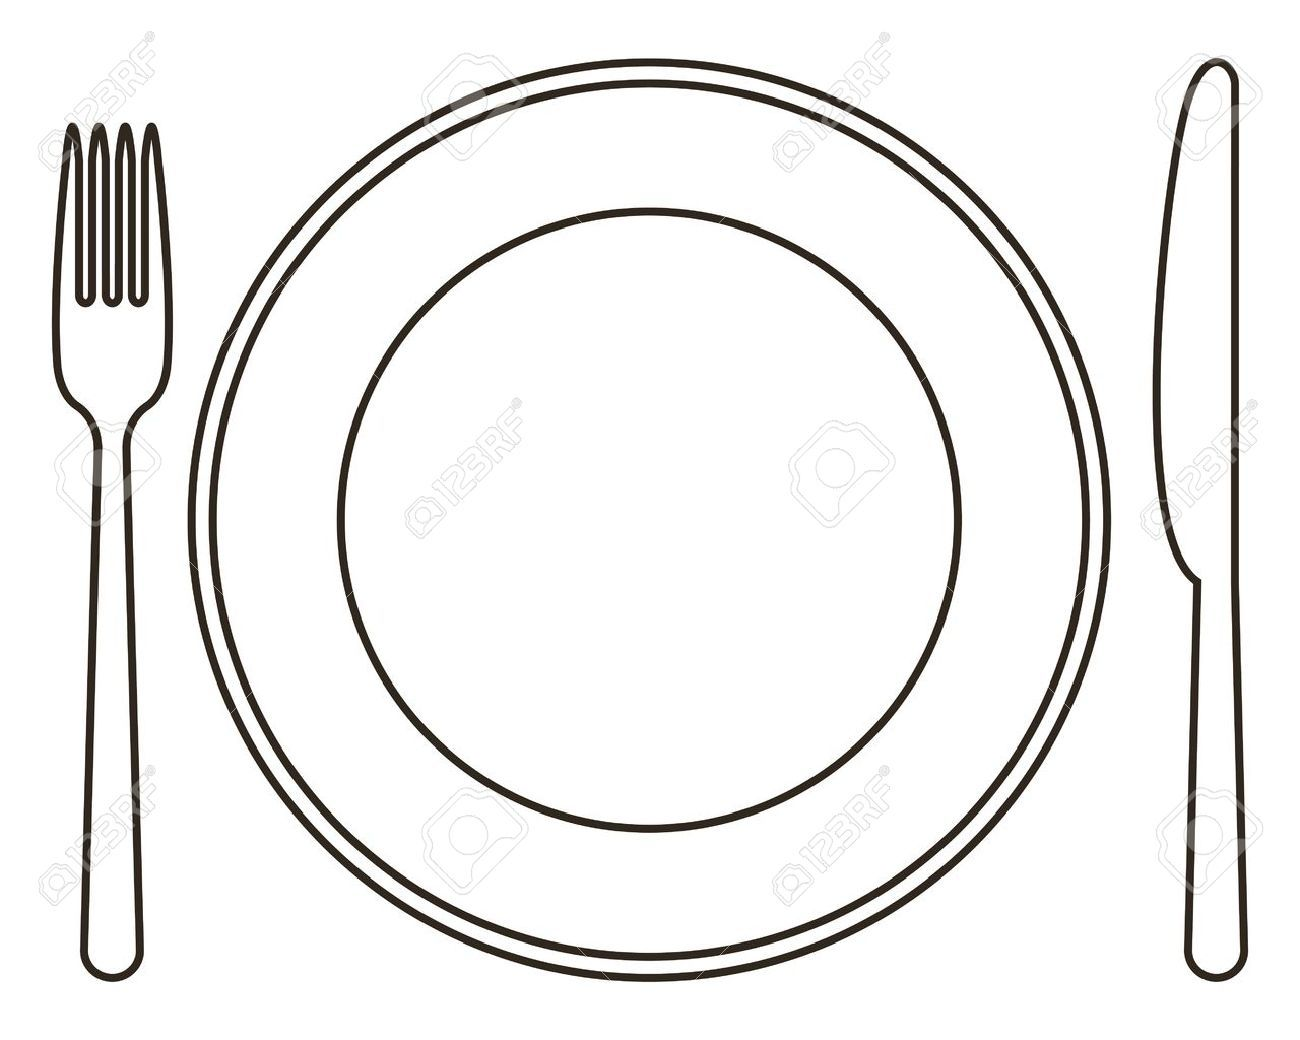 Plate and silverware clipart banner transparent Plate and silverware clipart 3 » Clipart Portal banner transparent